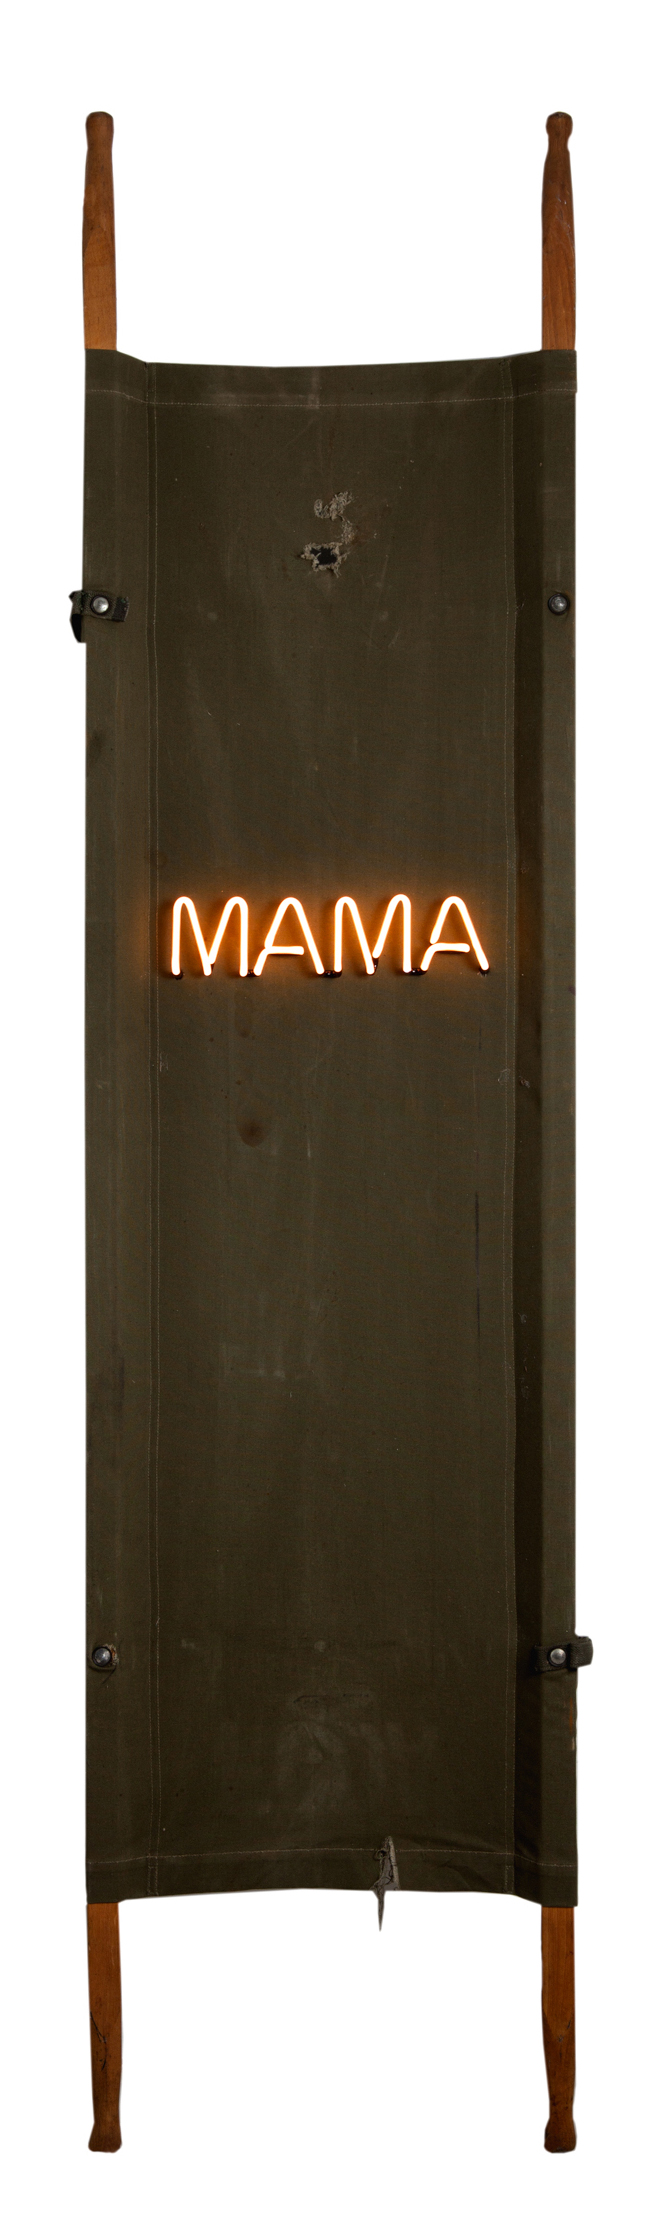 MAMA, 2016, Neon on Stretcher, 68 x 16 x 7 in